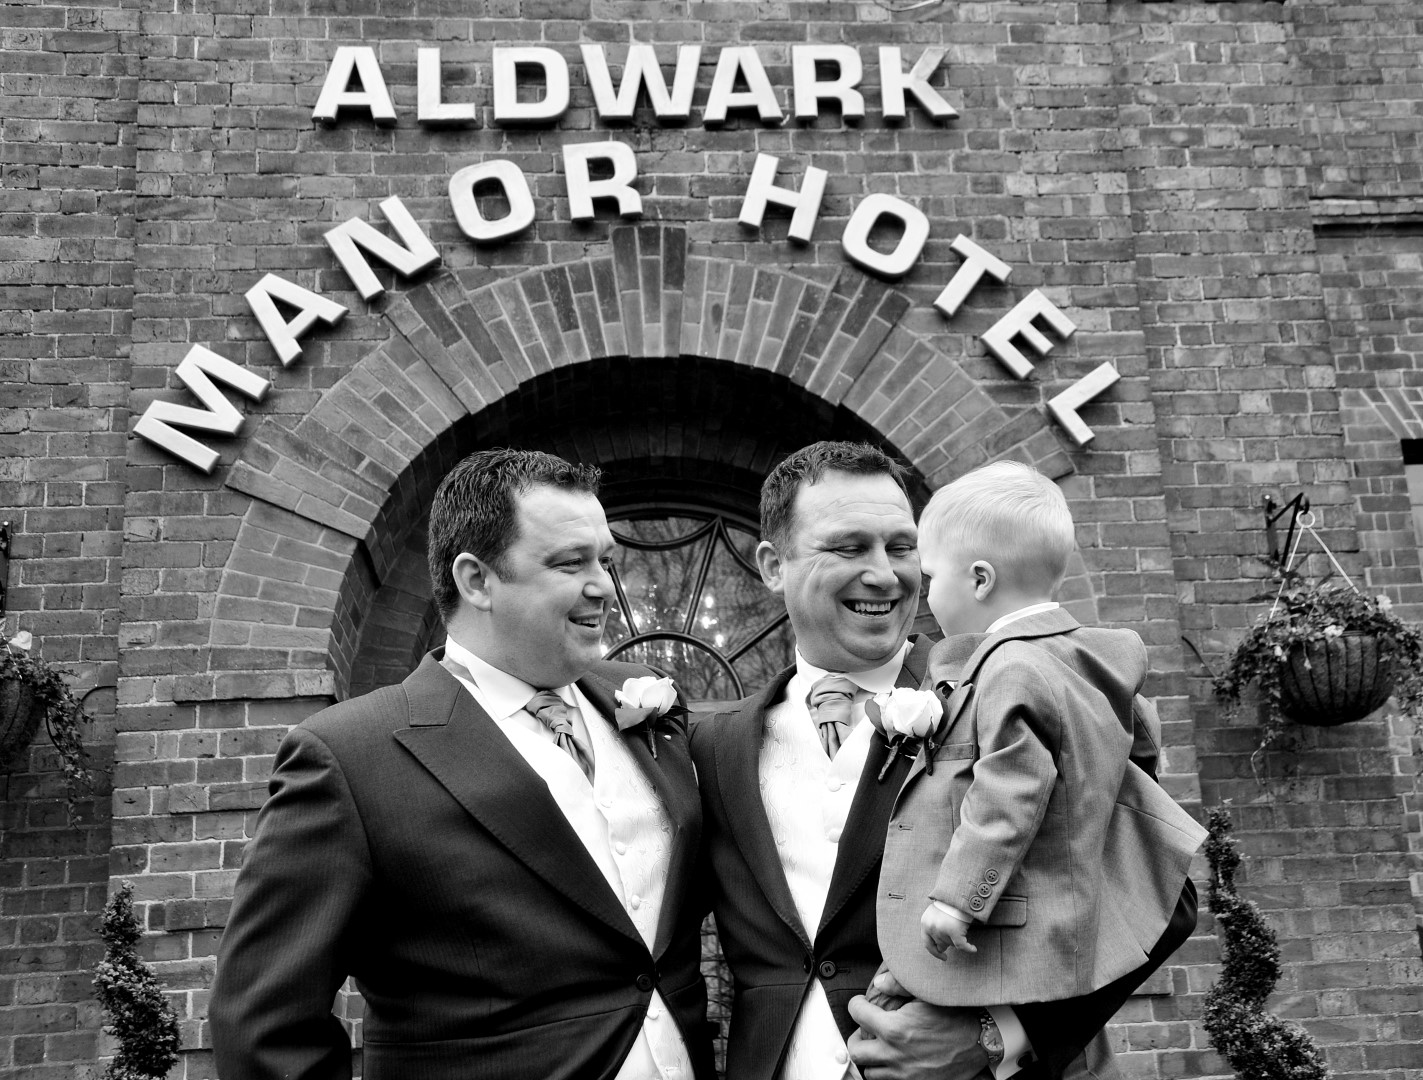 weddings-aldwrk